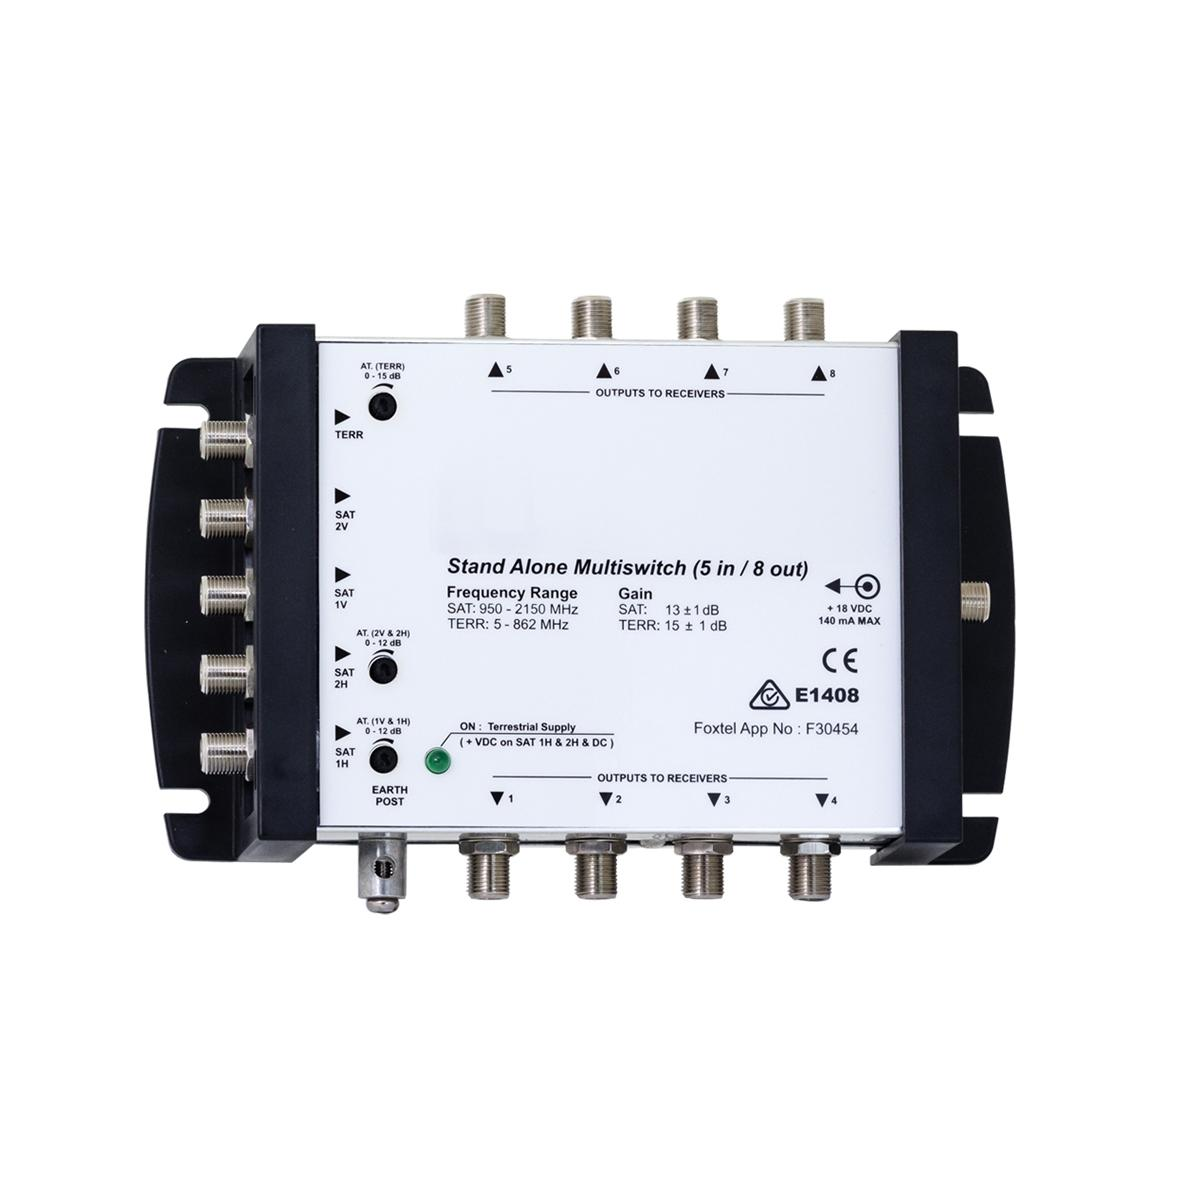 Multiswitch 5 In 8 Out FOXTEL Approved No. F30499